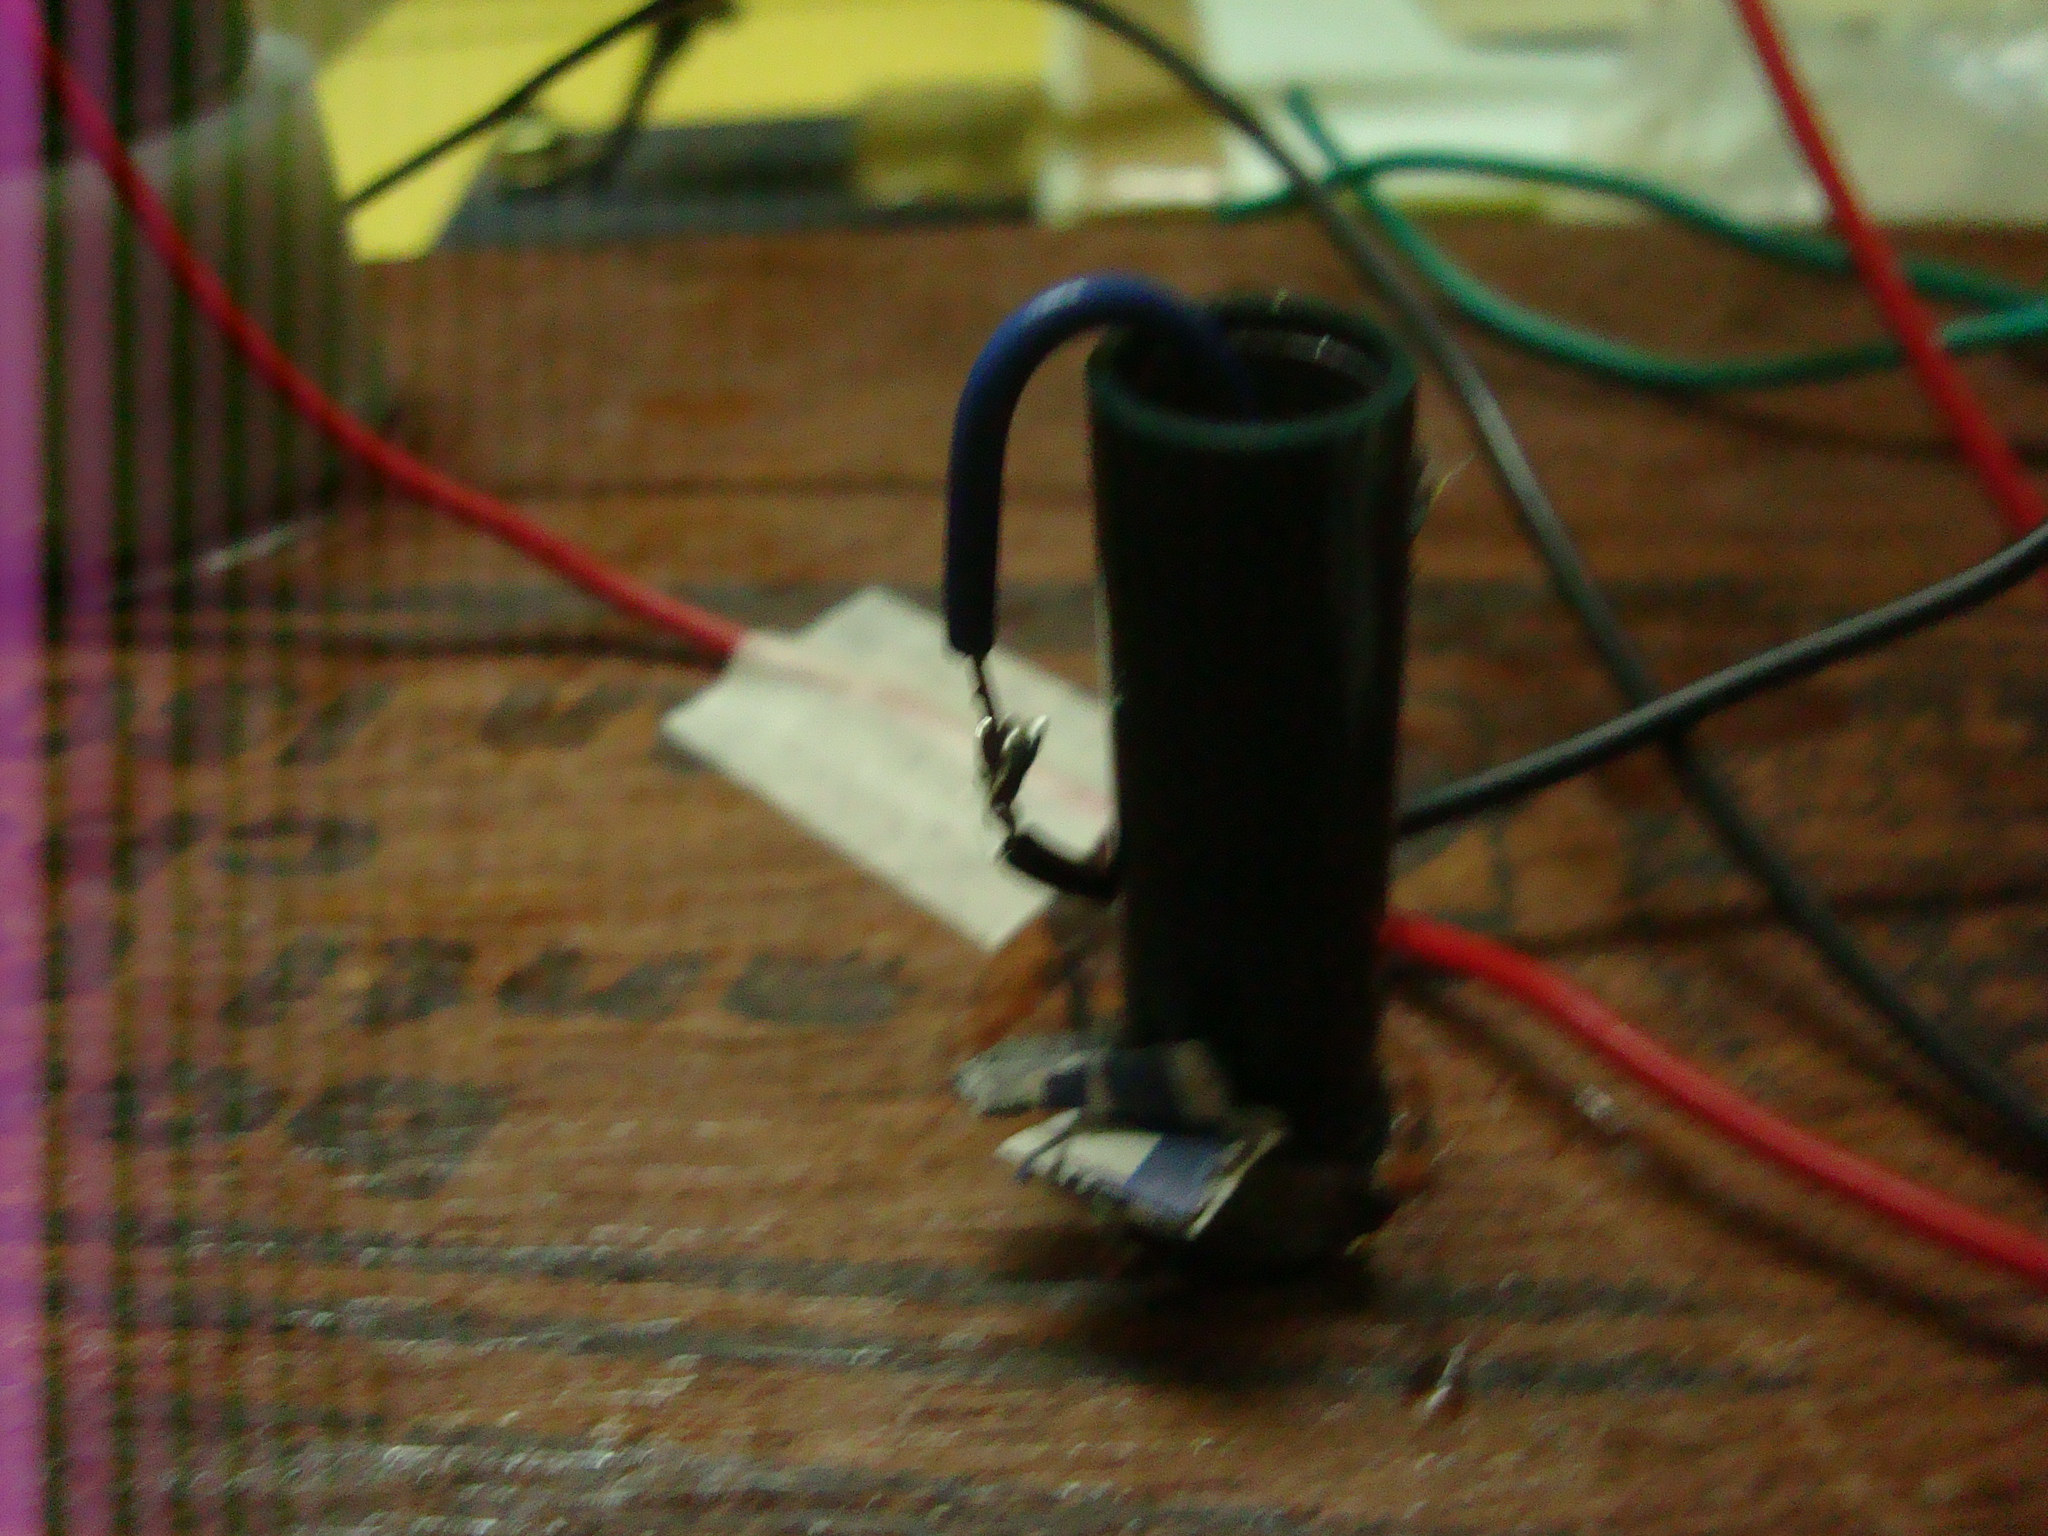 Picture of Pushing the Wires Through the Stem